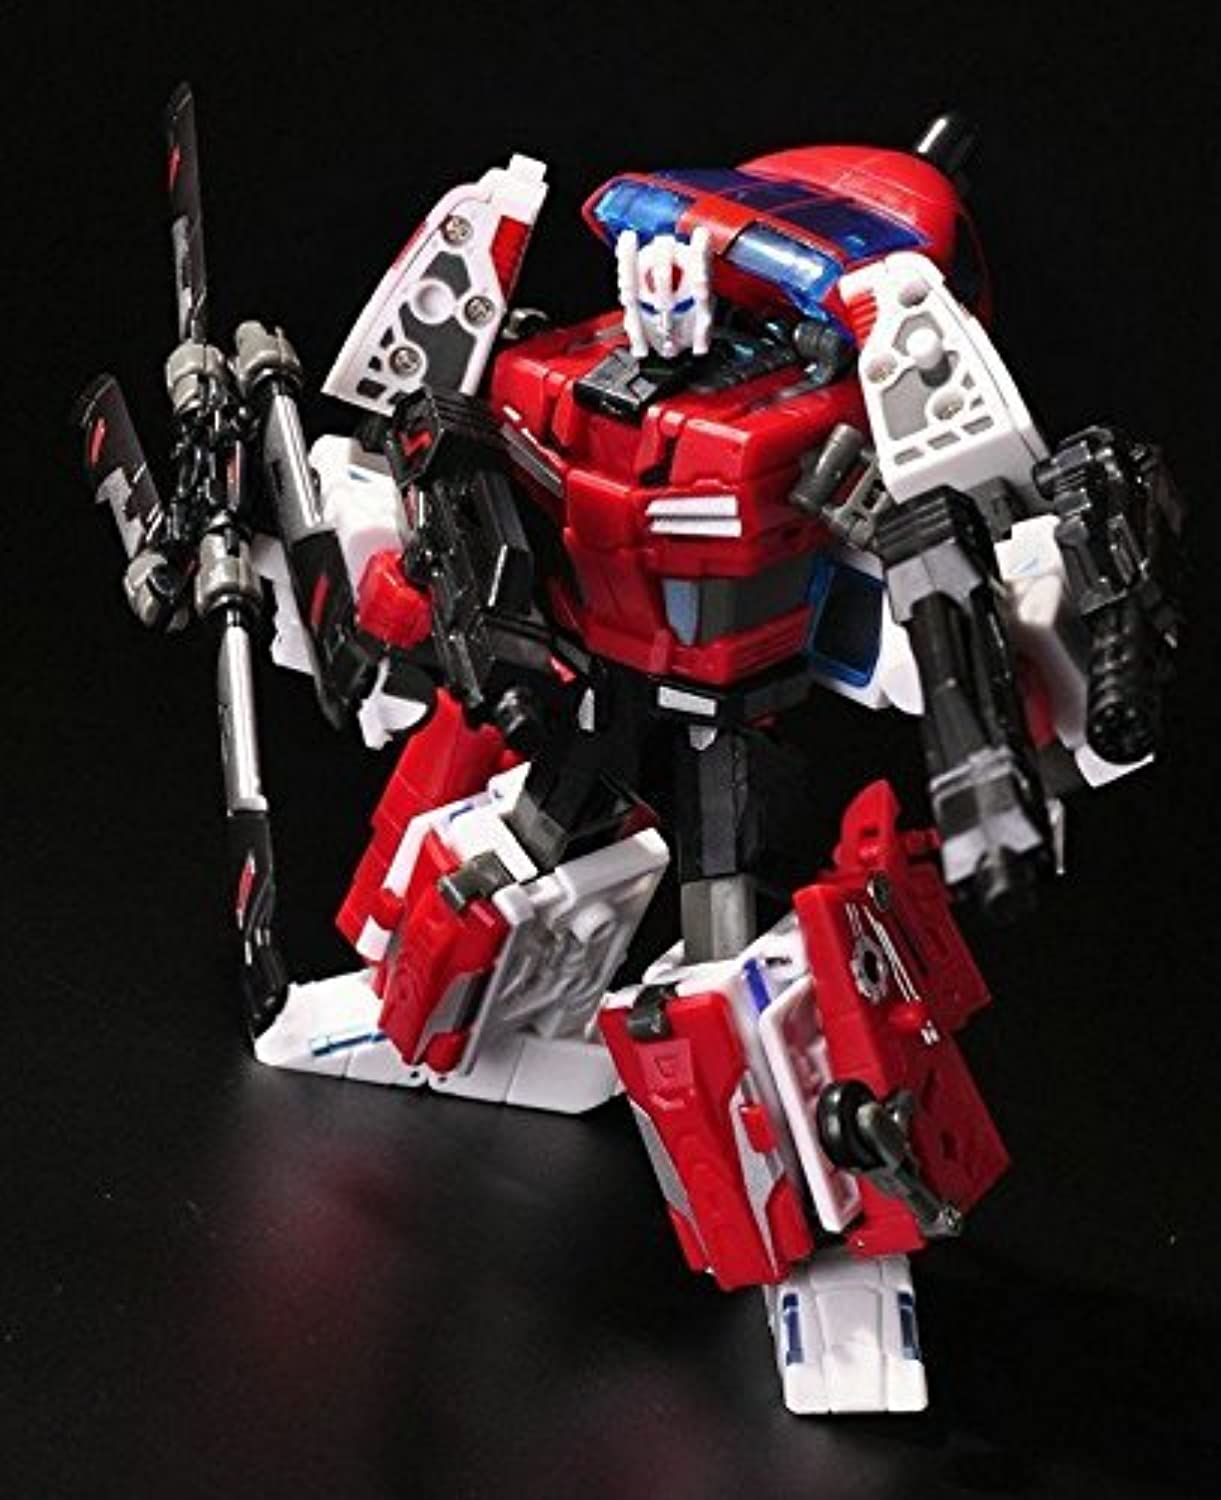 スターリングTransformers Prometheus Guardian verti-aidブレード図